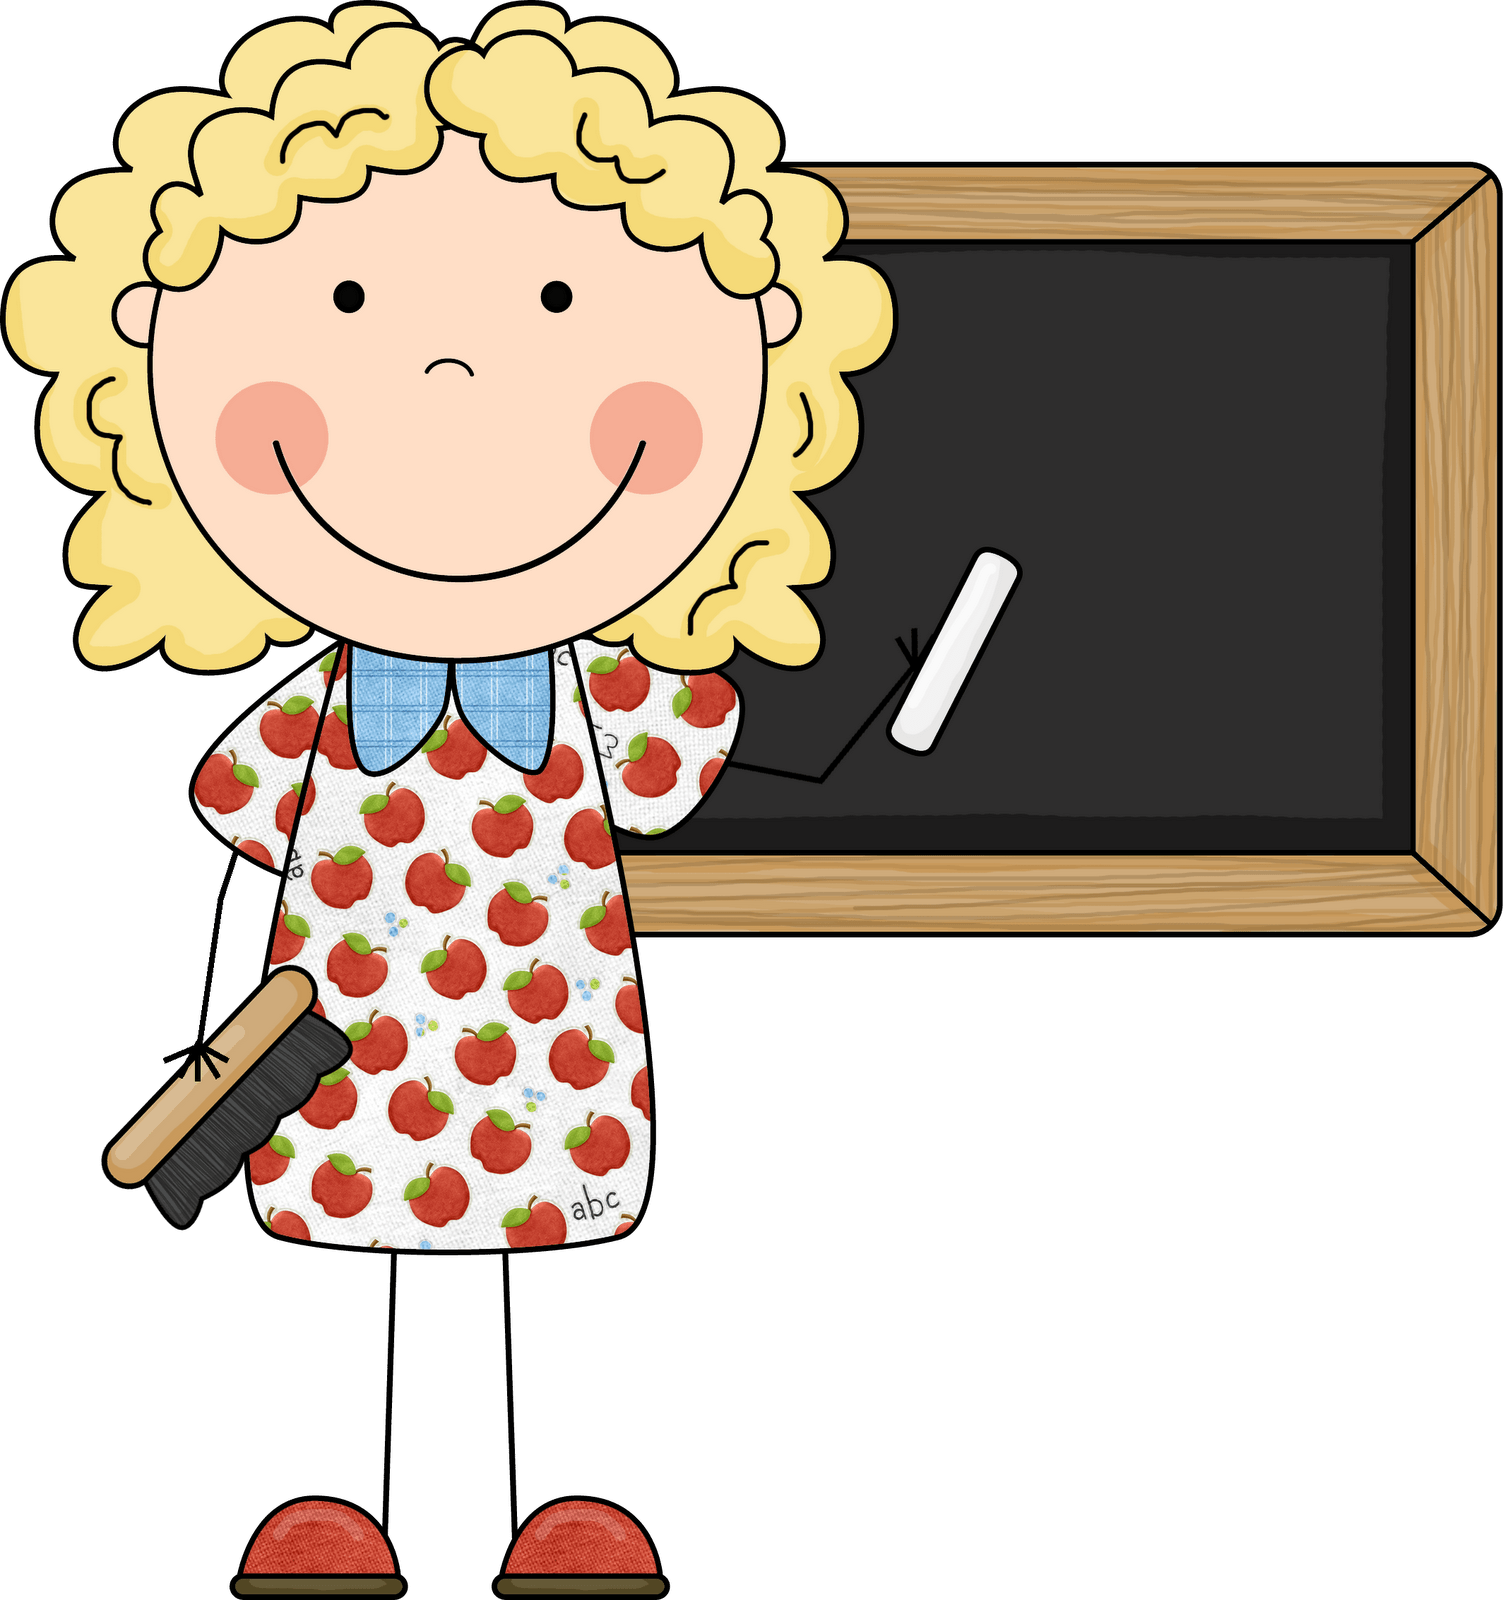 Geometry clipart teacher Clipart Collection Save Clipart of